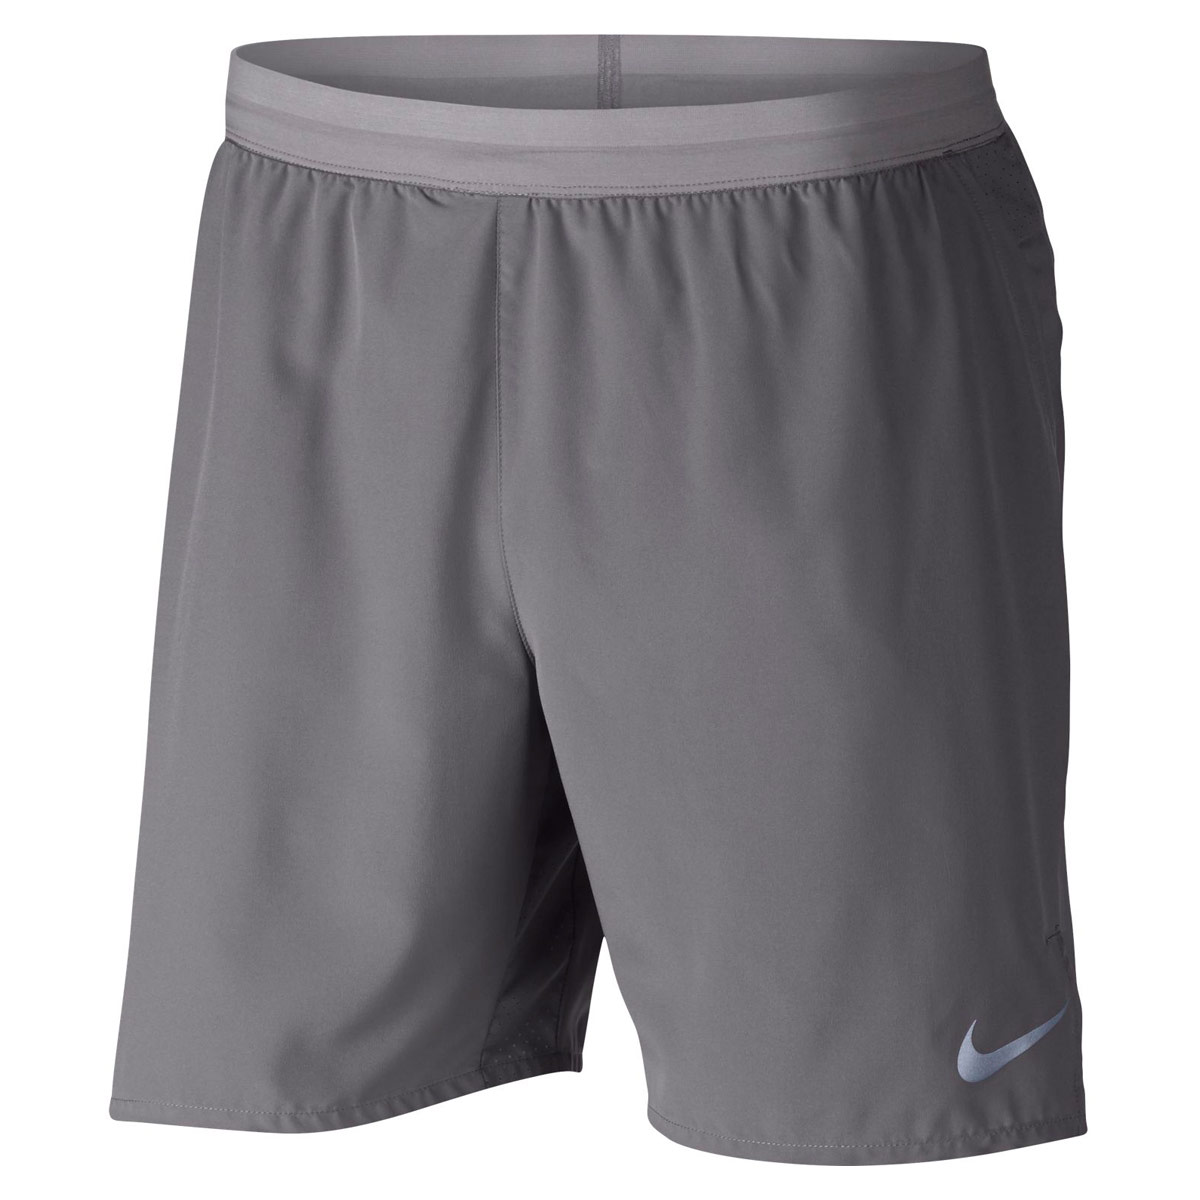 sneakers for cheap 3f843 82698 Nike Flex Stride Running Shorts - Pantalons course pour Homme - Gris   21RUN